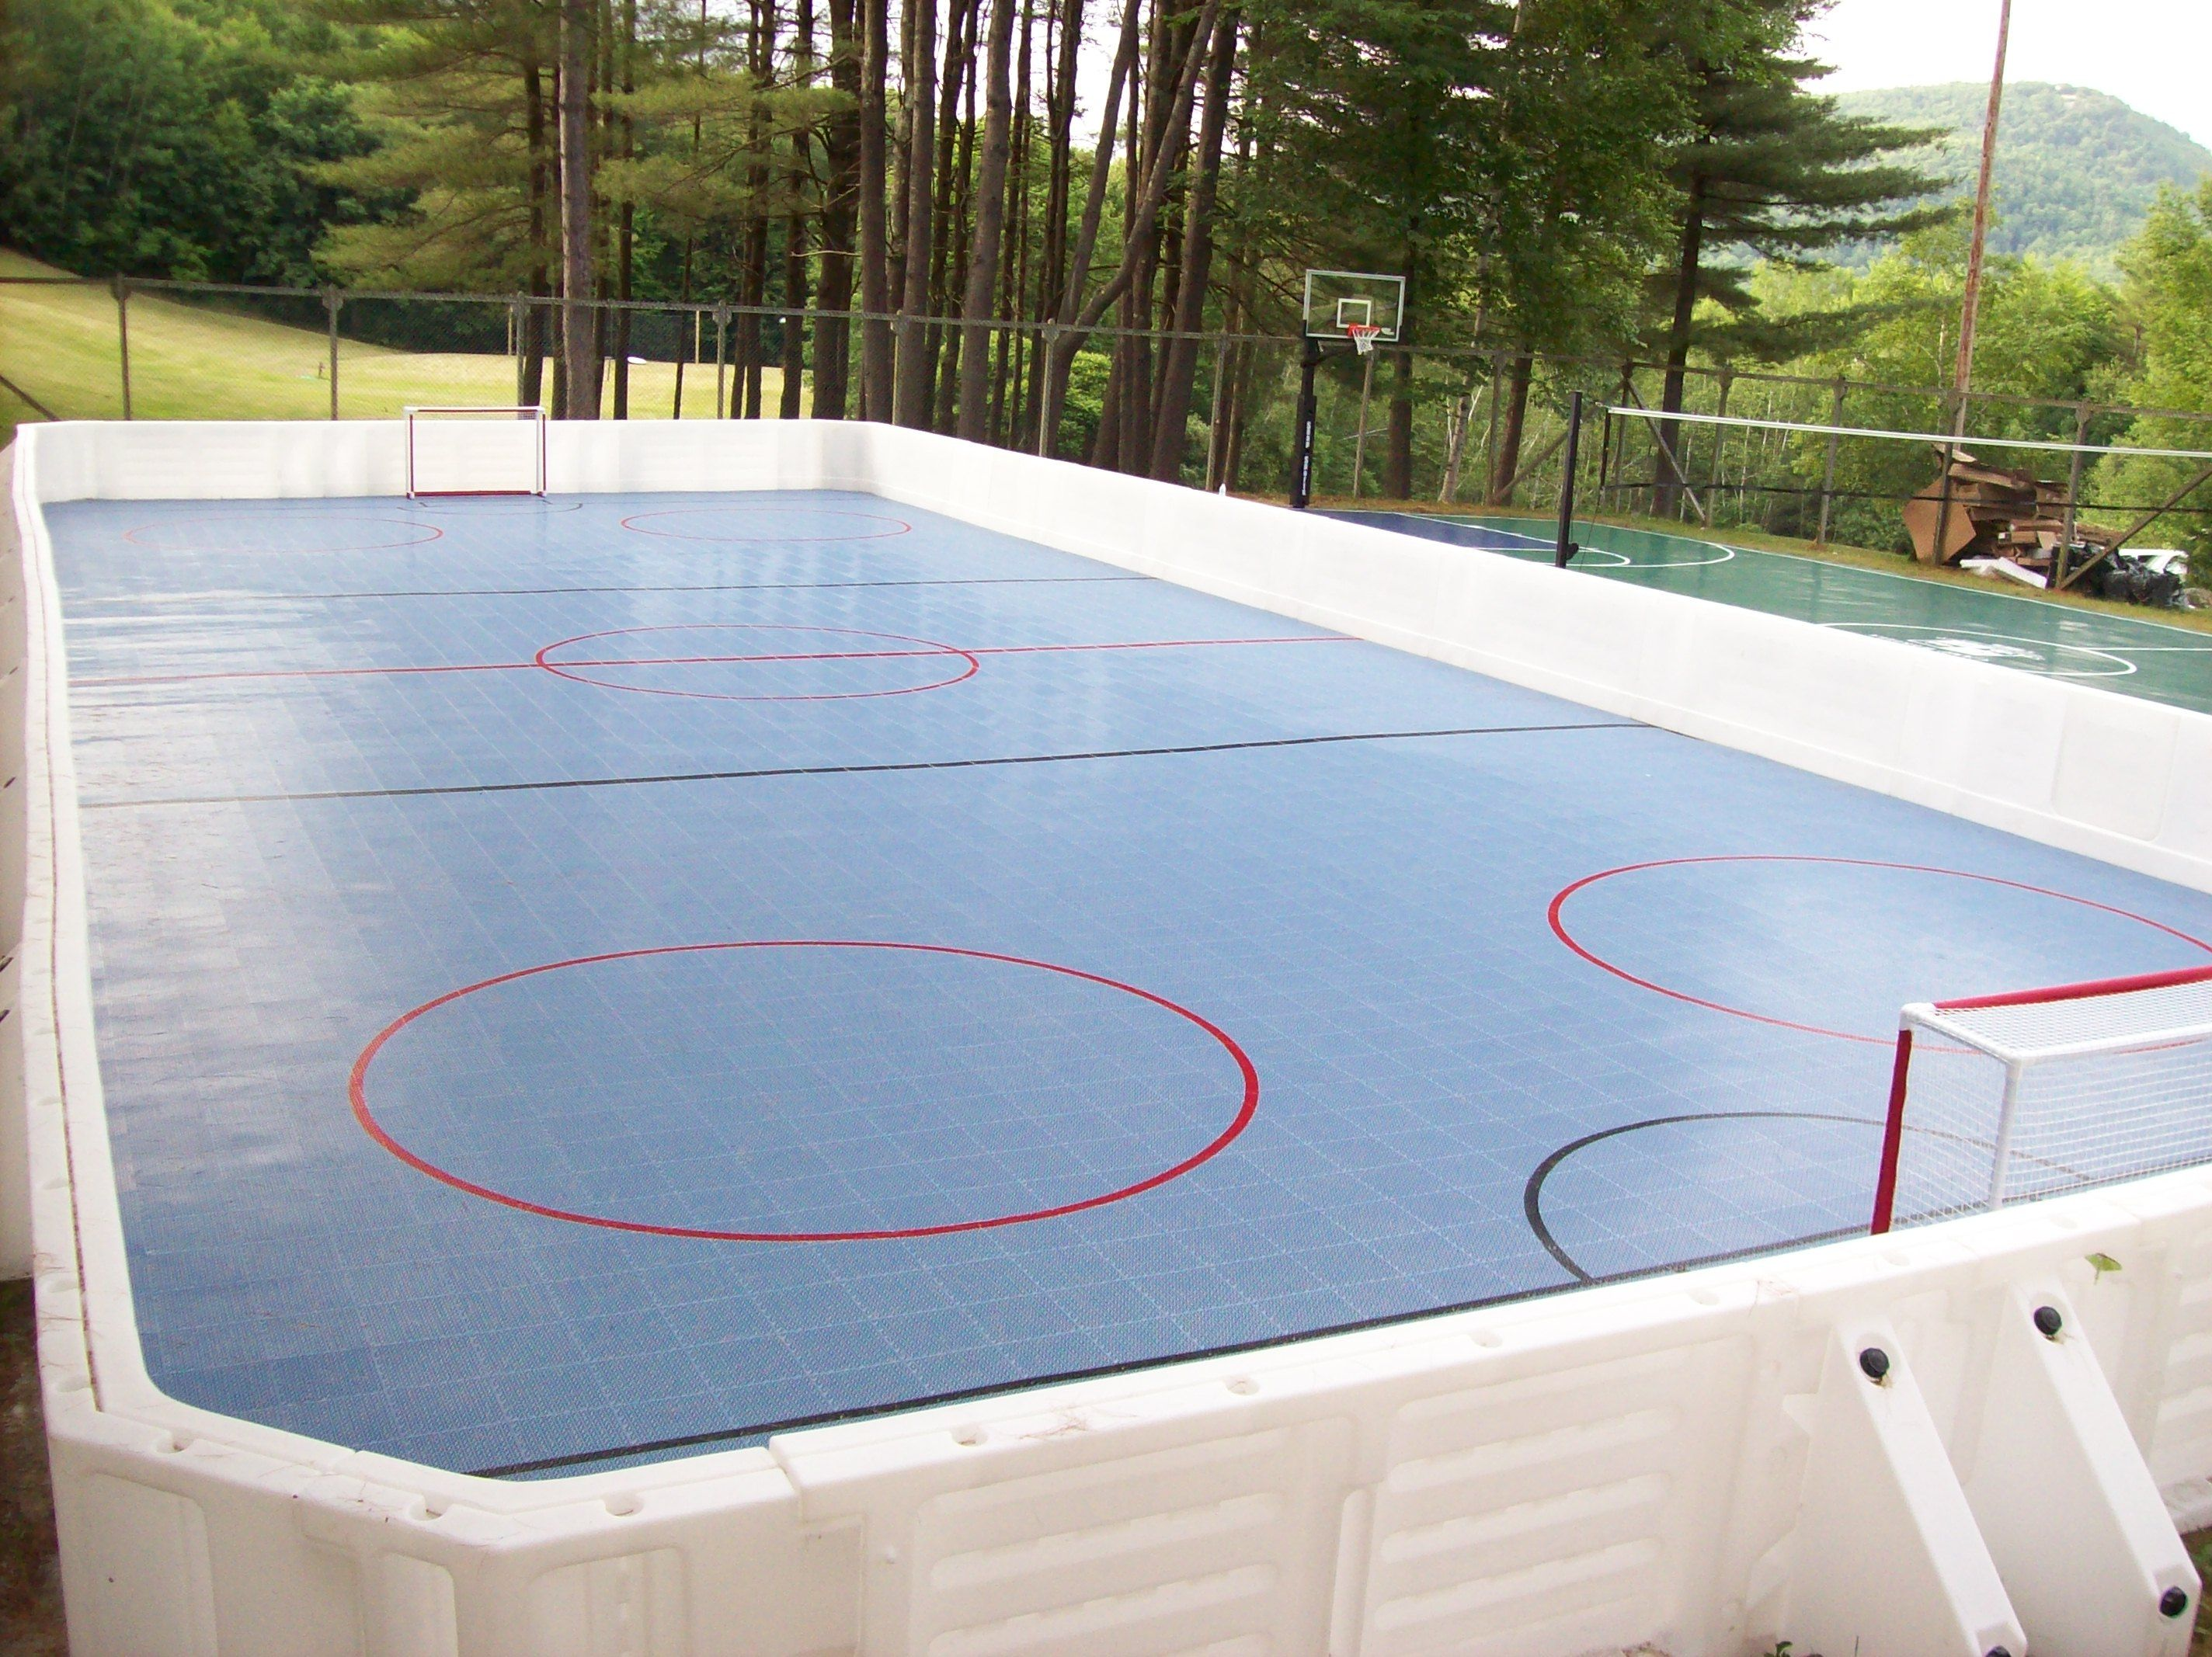 Hockey Rink Set Up At Camp With ProWall Dasher Boards